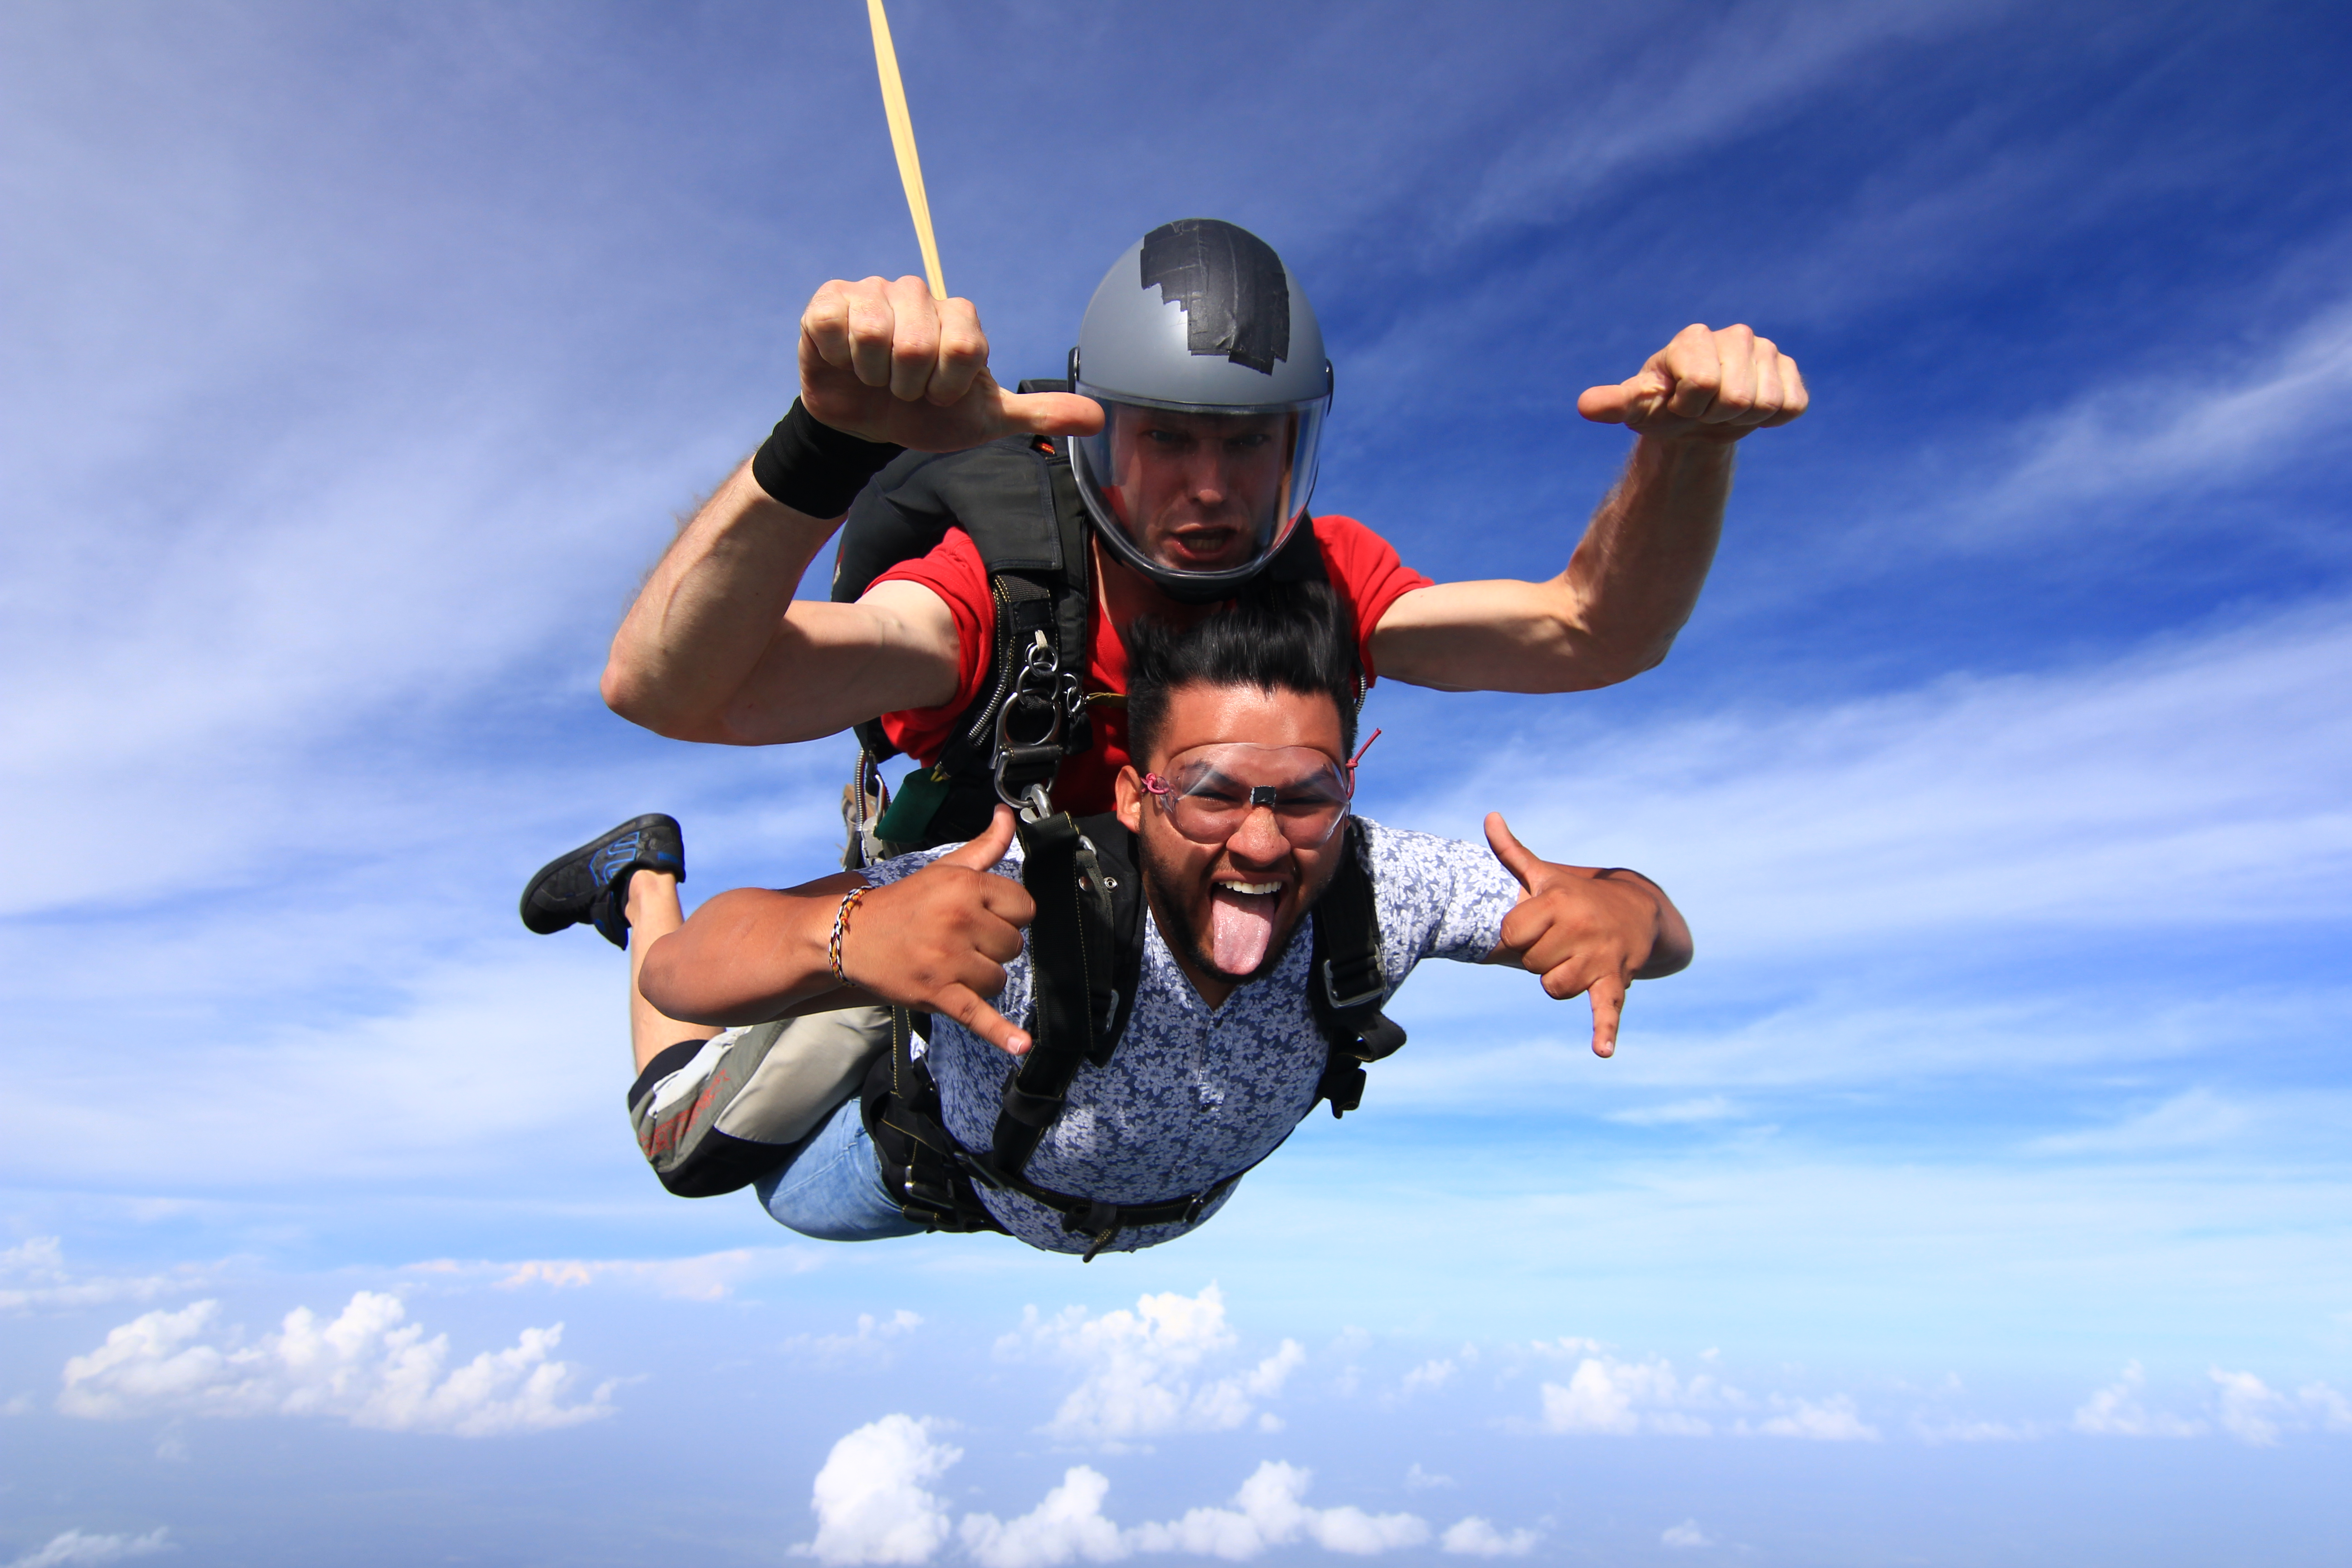 Miami skydiving center groupon : Quick and easy vegetarian